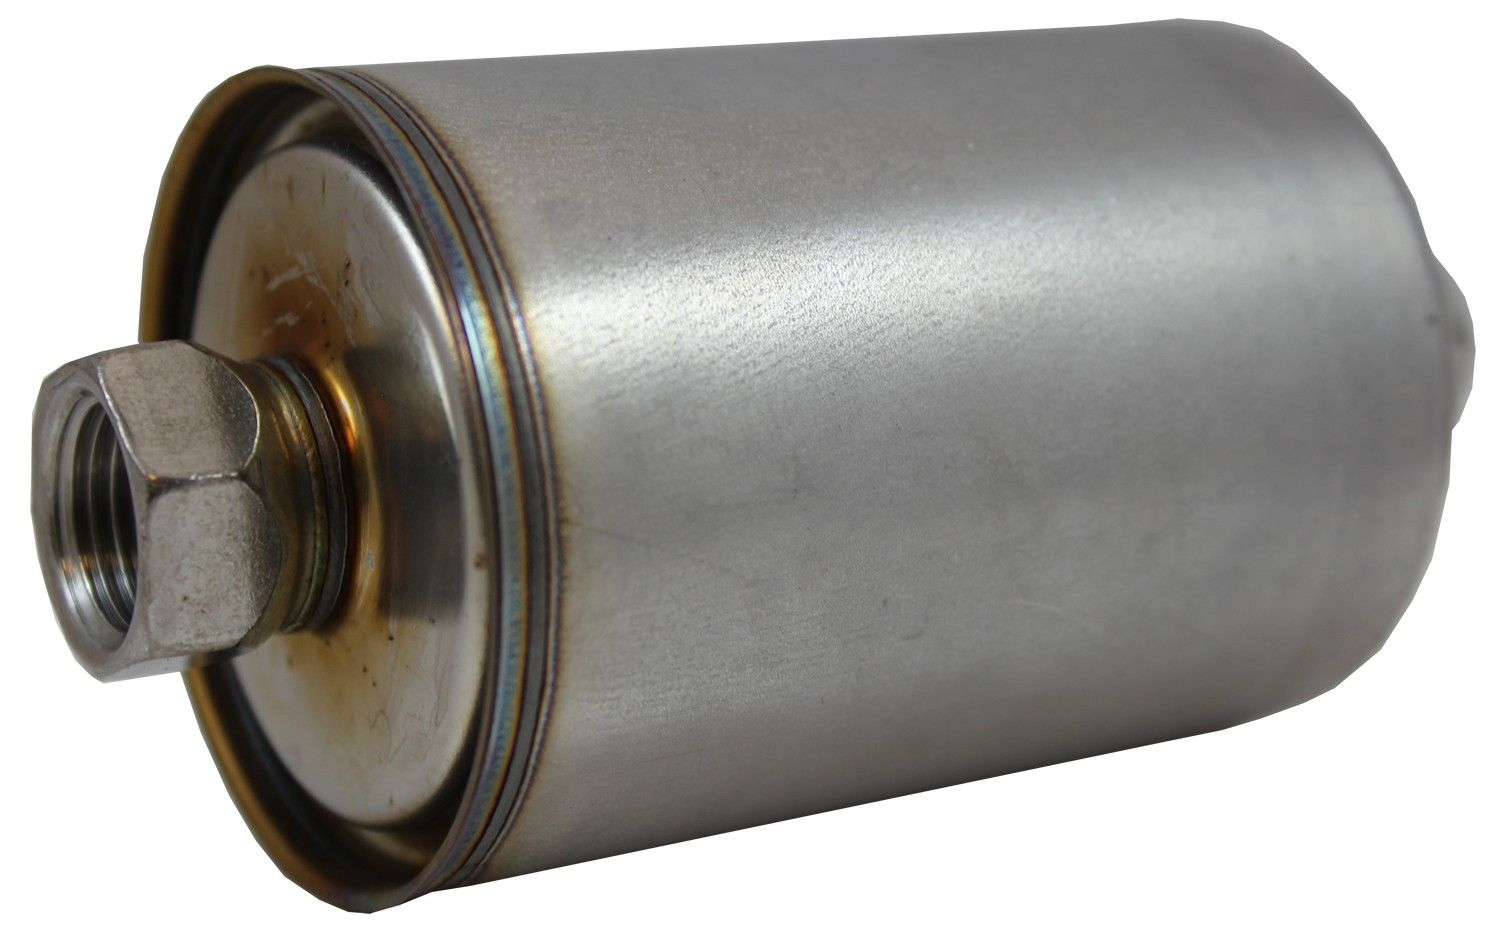 Jaguar Xj6 Fuel Filter Replacement Beck Arnley Fram Hastings 1991 6 Cyl 40l G3727 In Line Unit Box Product